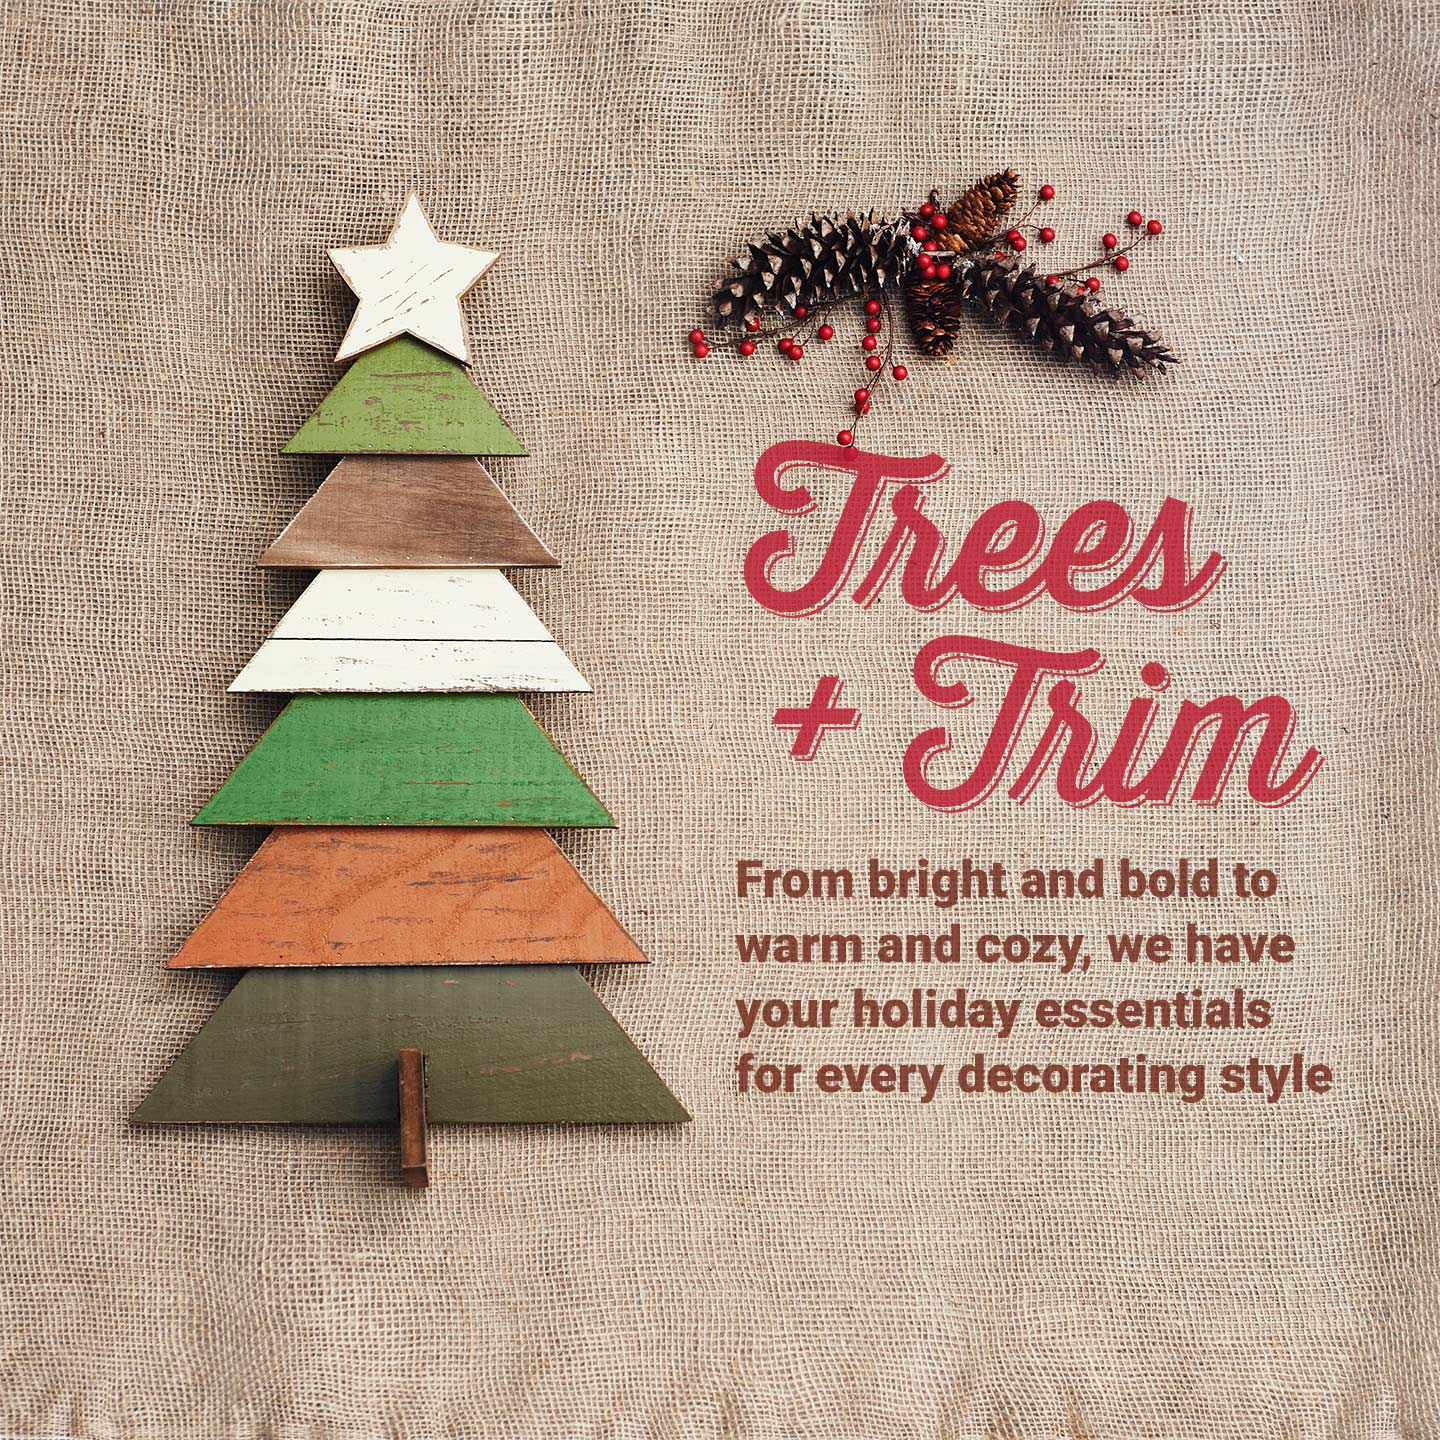 Shop trees & trim that match your own holiday style!